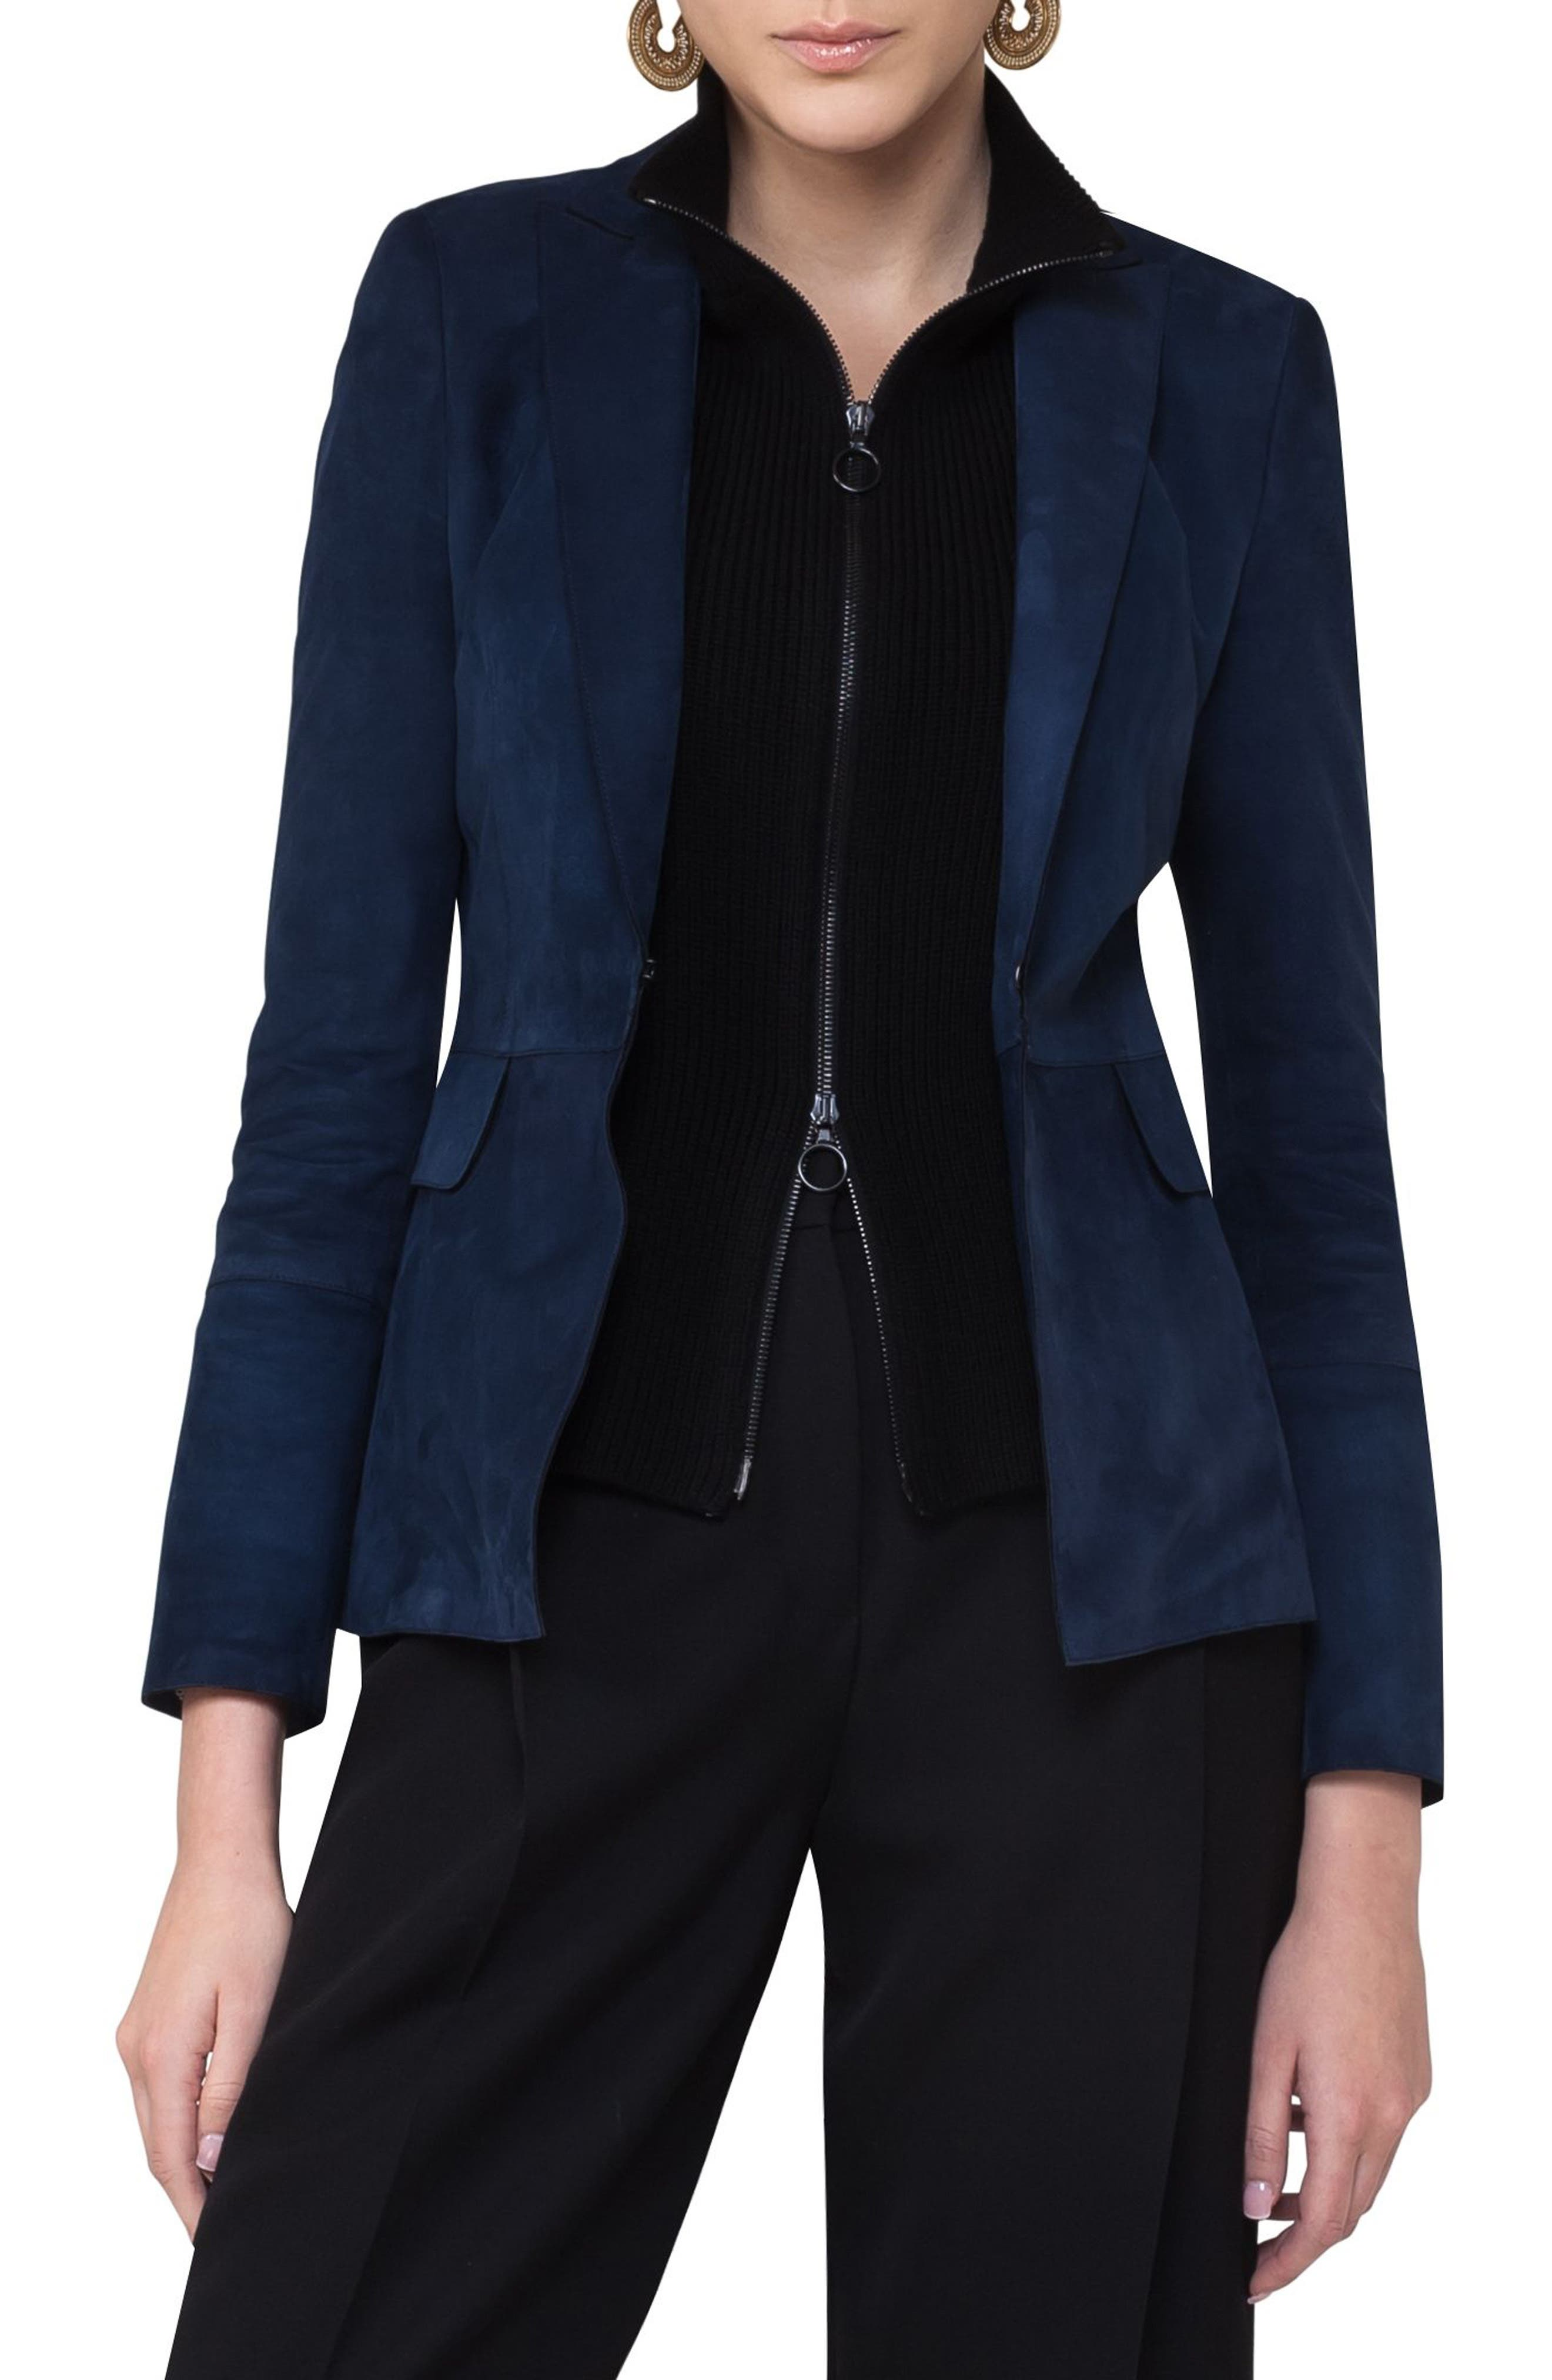 Suede Blazer with Removable Knit Insert,                         Main,                         color, 400